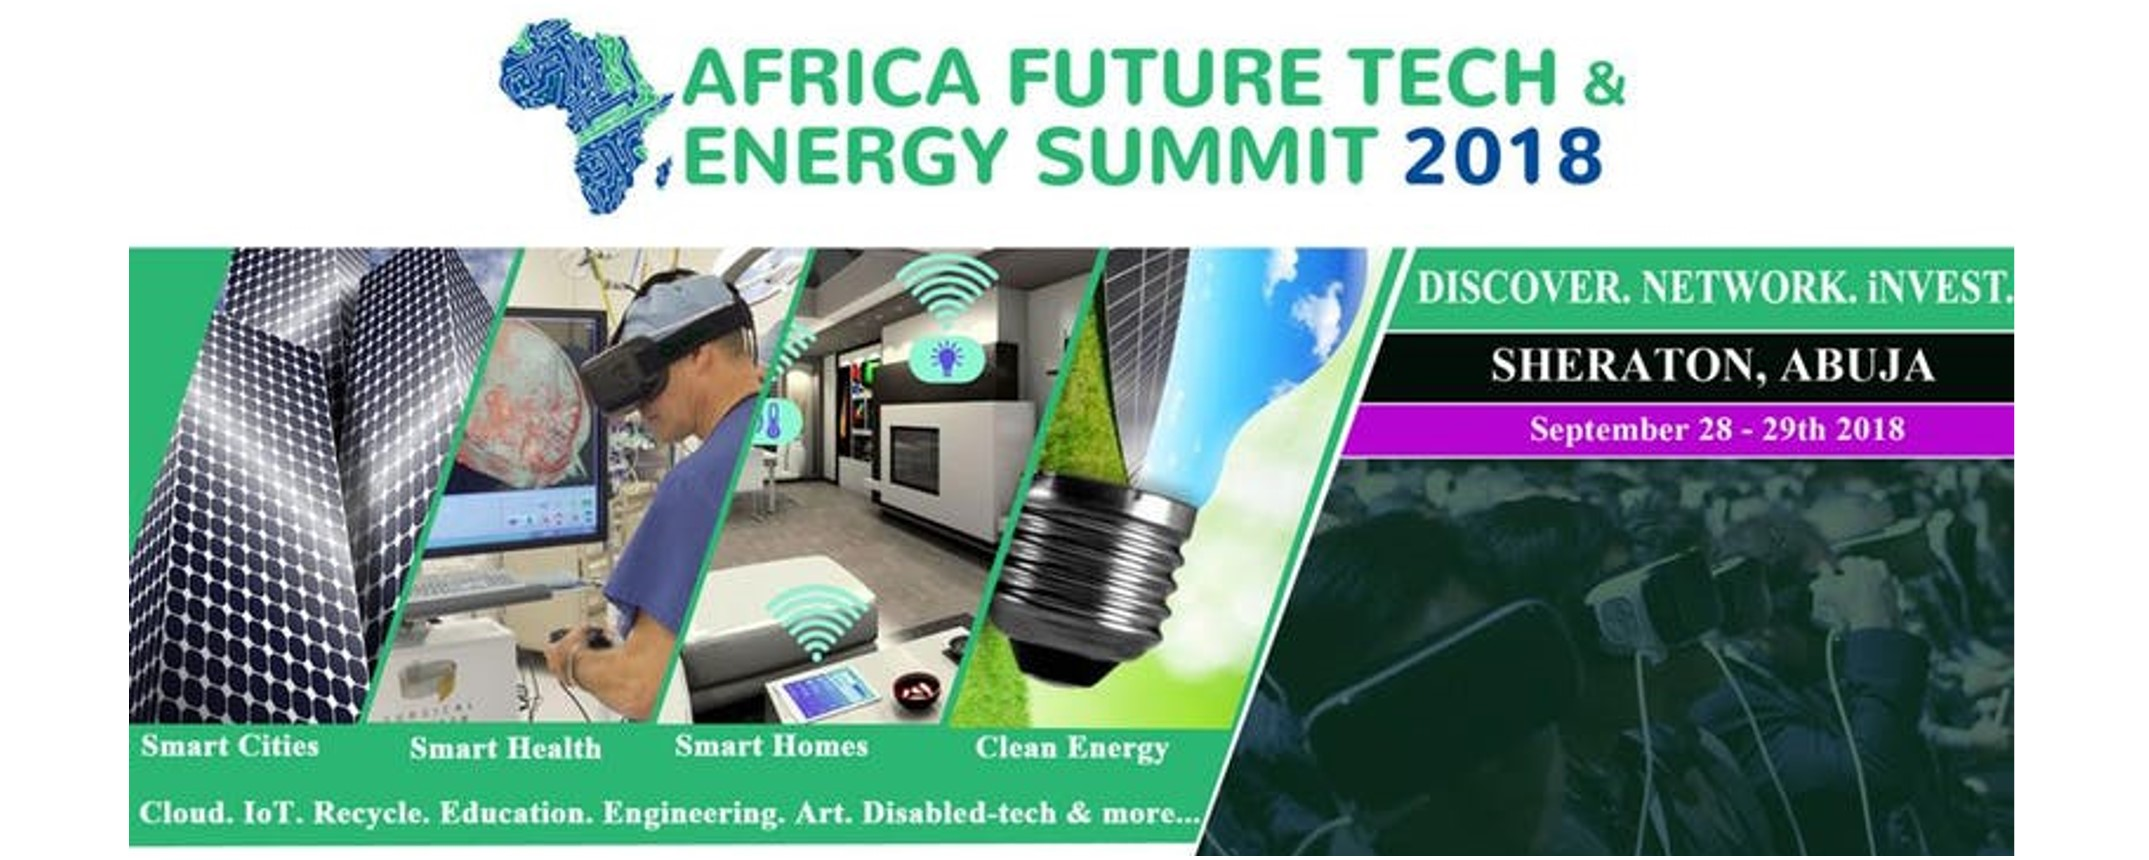 Africa Future Tech & Energy Summit - Africa Future Tech & Energy Summit 2018 Movemeback African event cover image